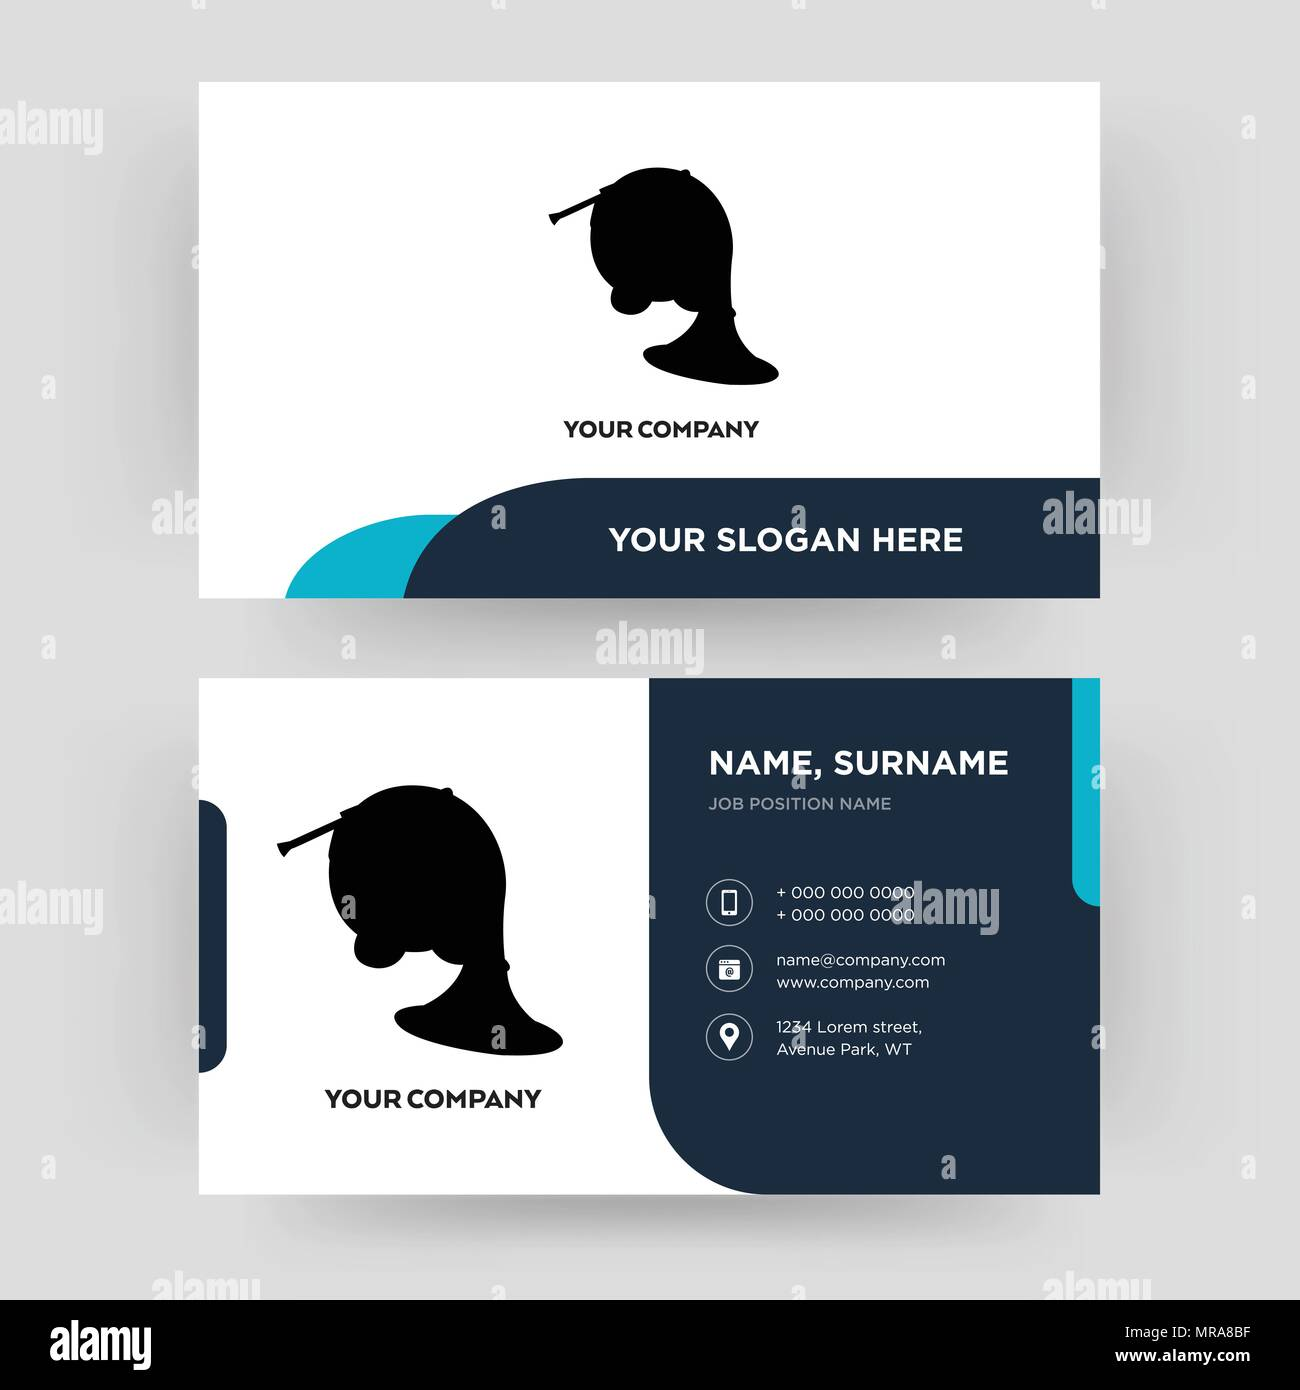 French horn business card design template visiting for your french horn business card design template visiting for your company modern creative and clean identity card vector colourmoves